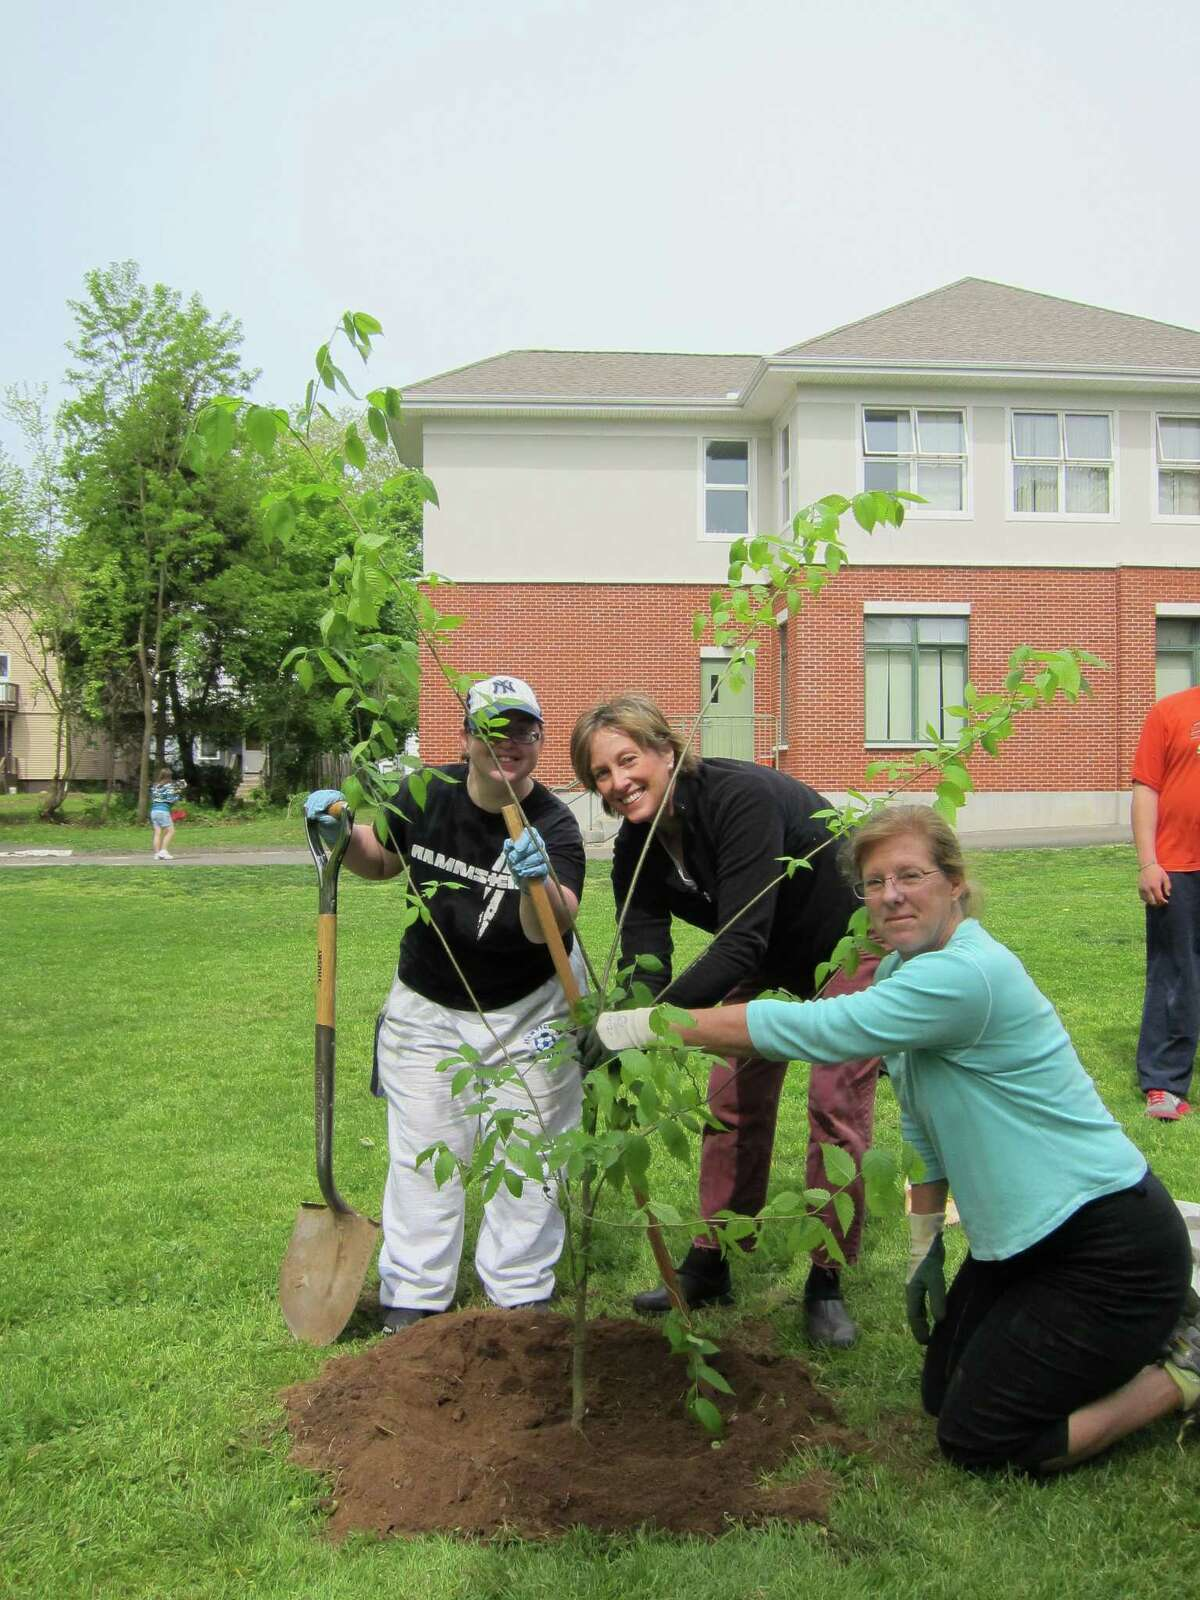 Chapel Haven recently received three American elm trees from Garden Club of New Haven. From left to right helping to plant one of the trees is Chapel Haven community member Megan Faitell, Garden Club of New Haven member Debbie Edwards and member Amy Estabrook. Photo by Catherine Sullivan-DeCarlo